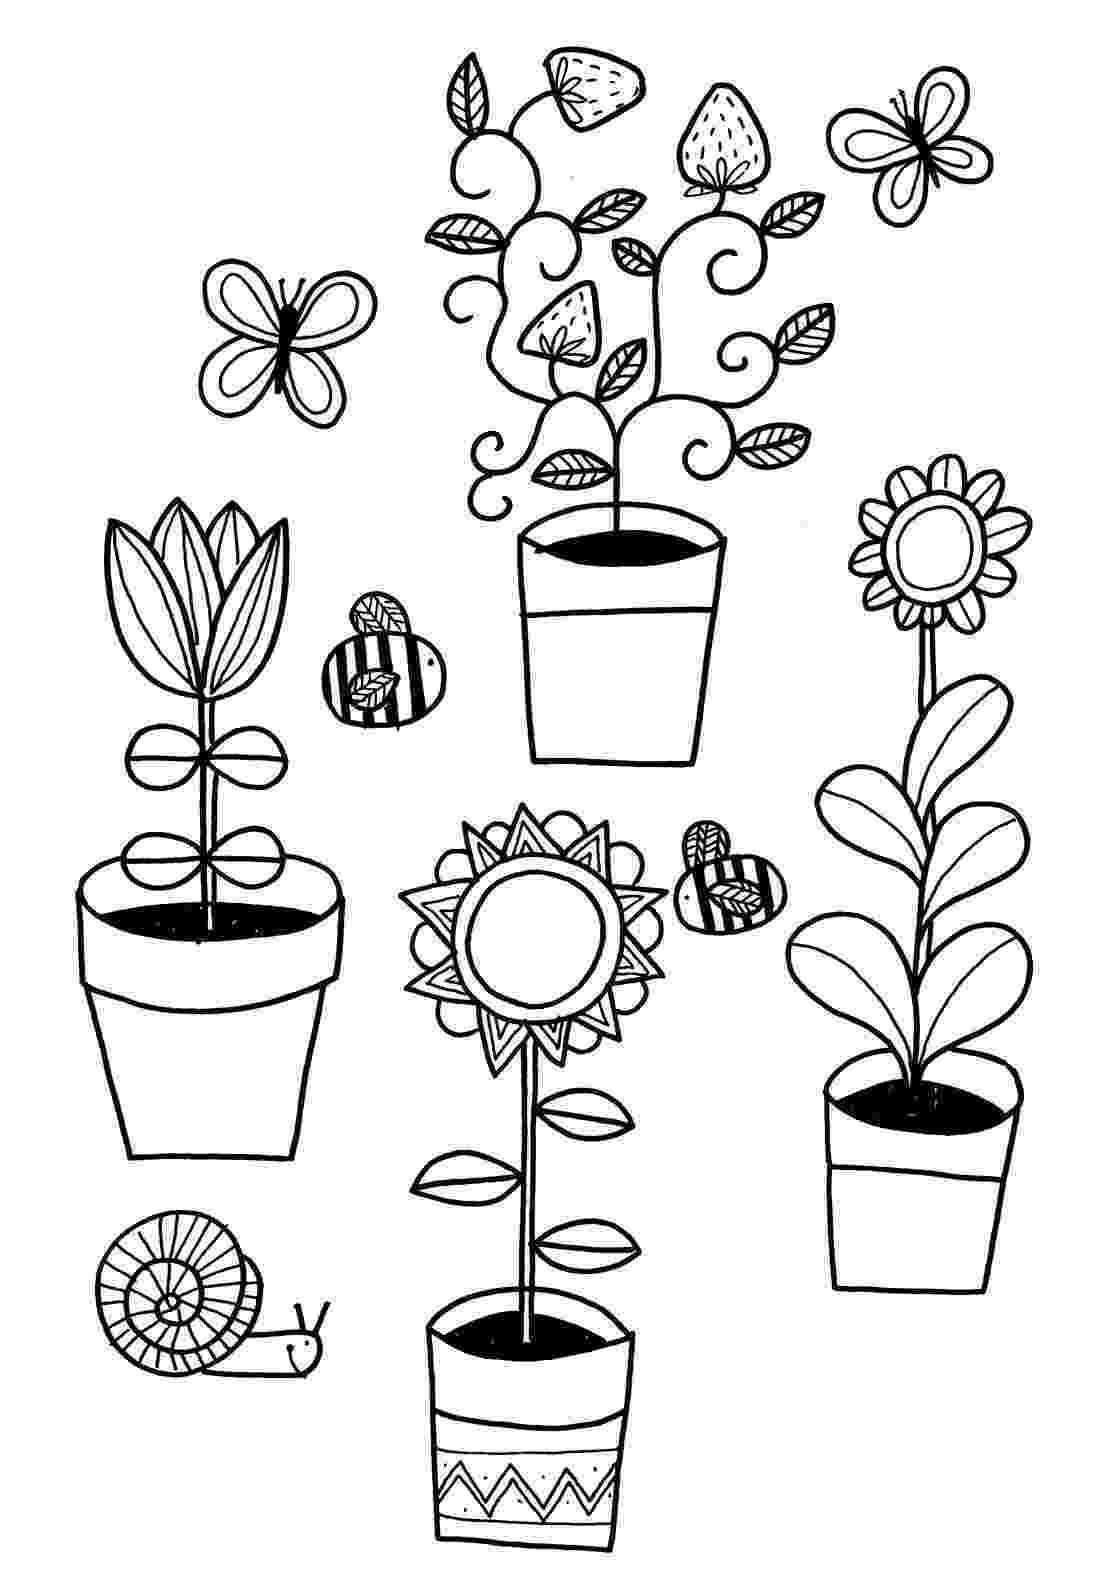 colouring pictures of plants free printable flower coloring pages for kids best colouring pictures plants of